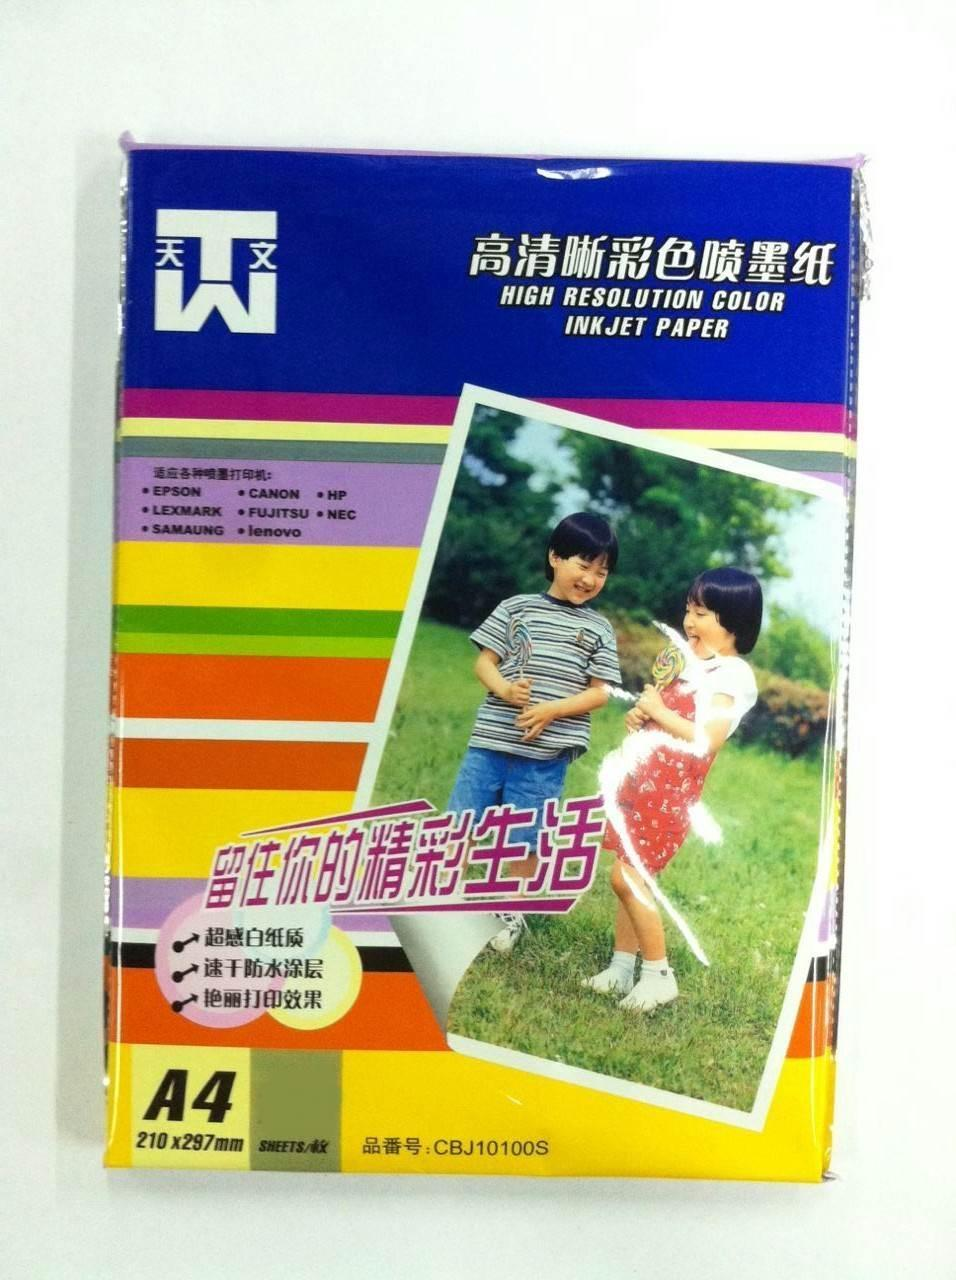 A4 130g Inkjet Photo Self-Adhesive (Sticker) Paper (50pcs)